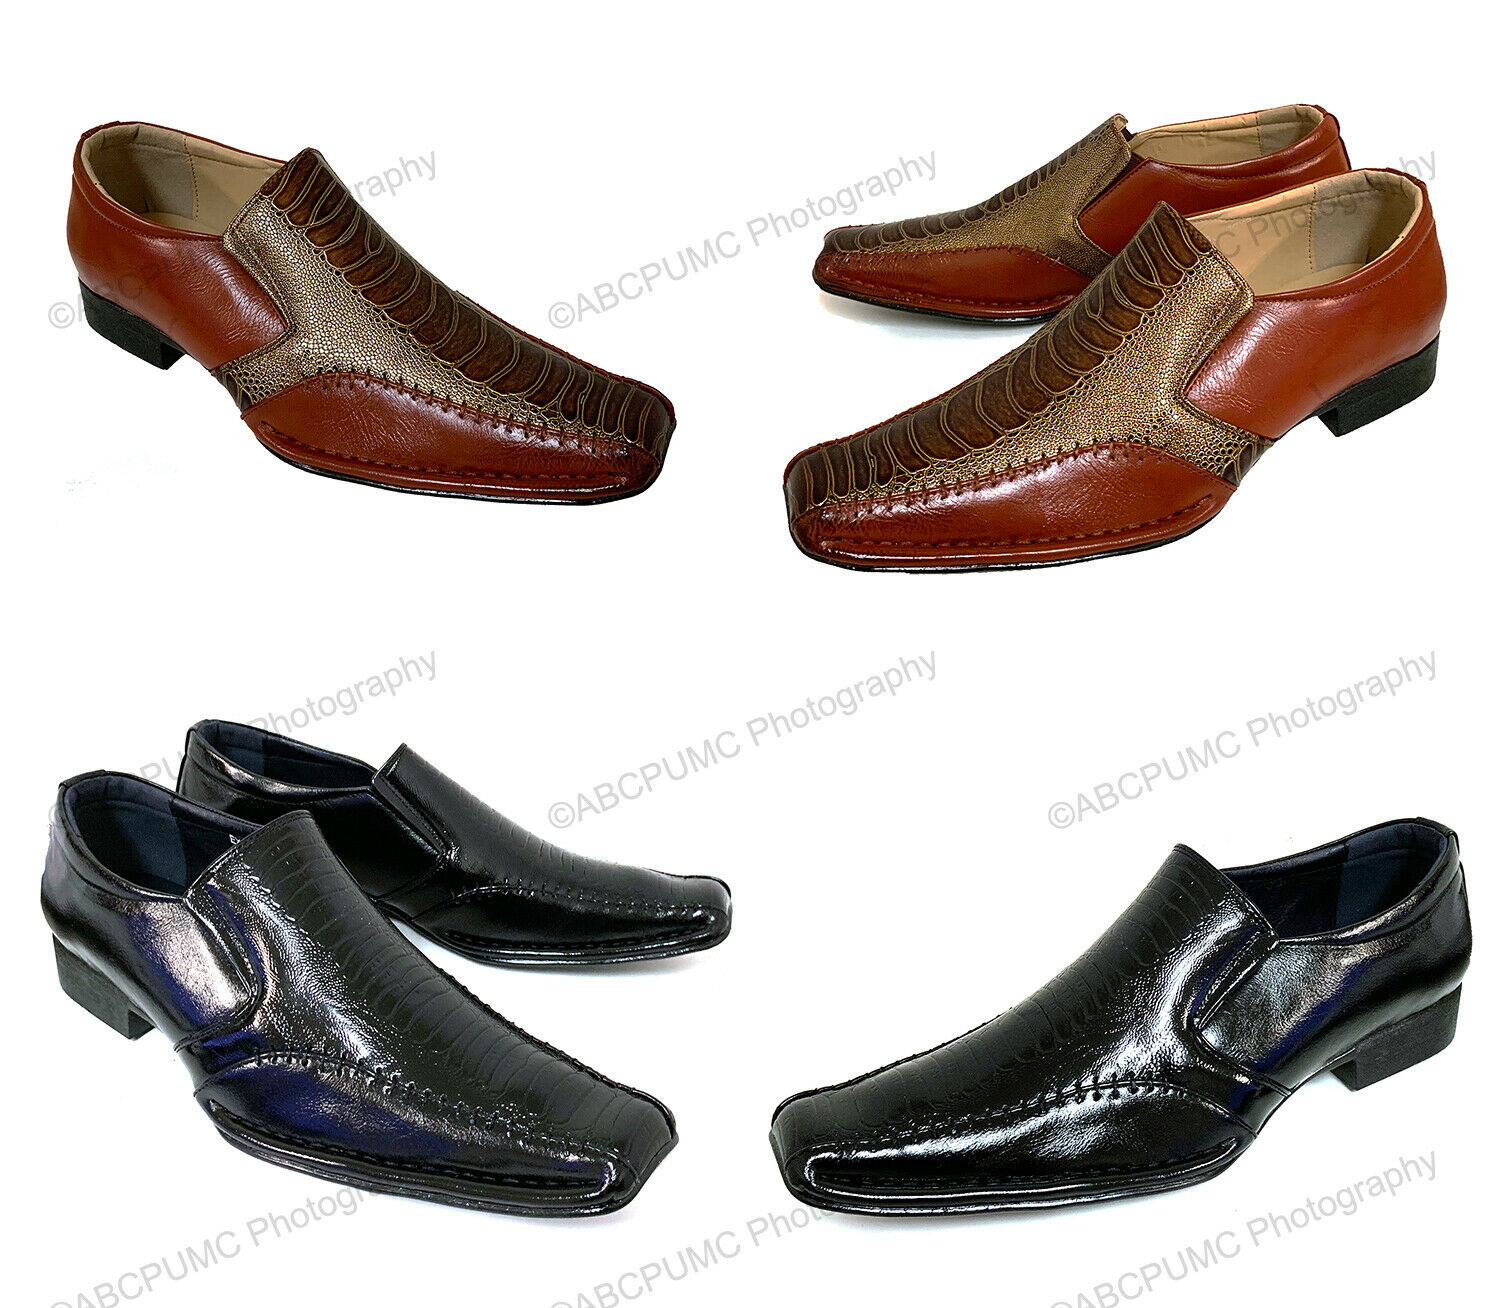 Men Dress Shoes Alligator Crocodile Casual Western Leather Lined Elastic Slip On